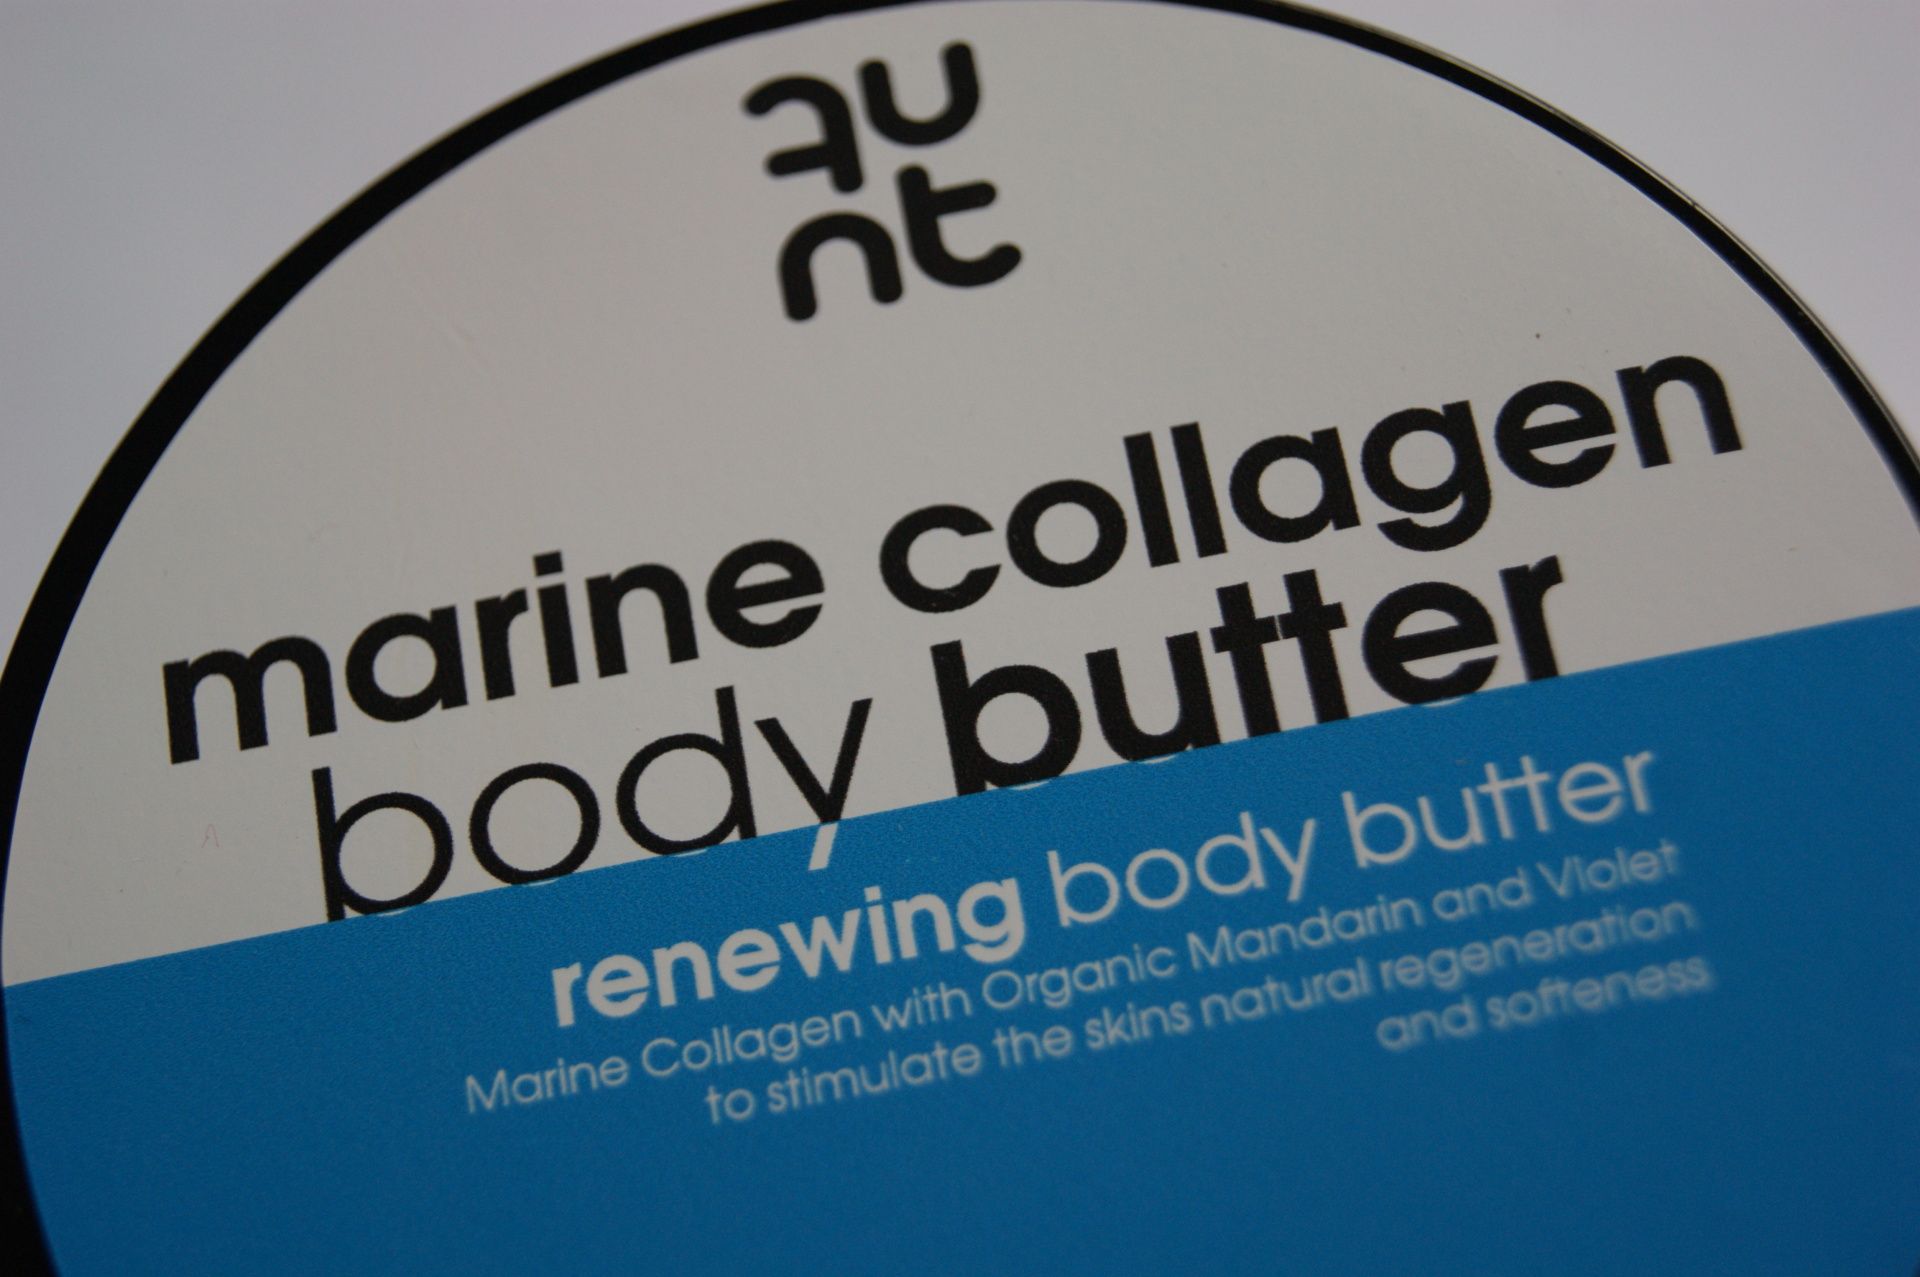 Naturally Thinking - Marine Collagen Body Butter